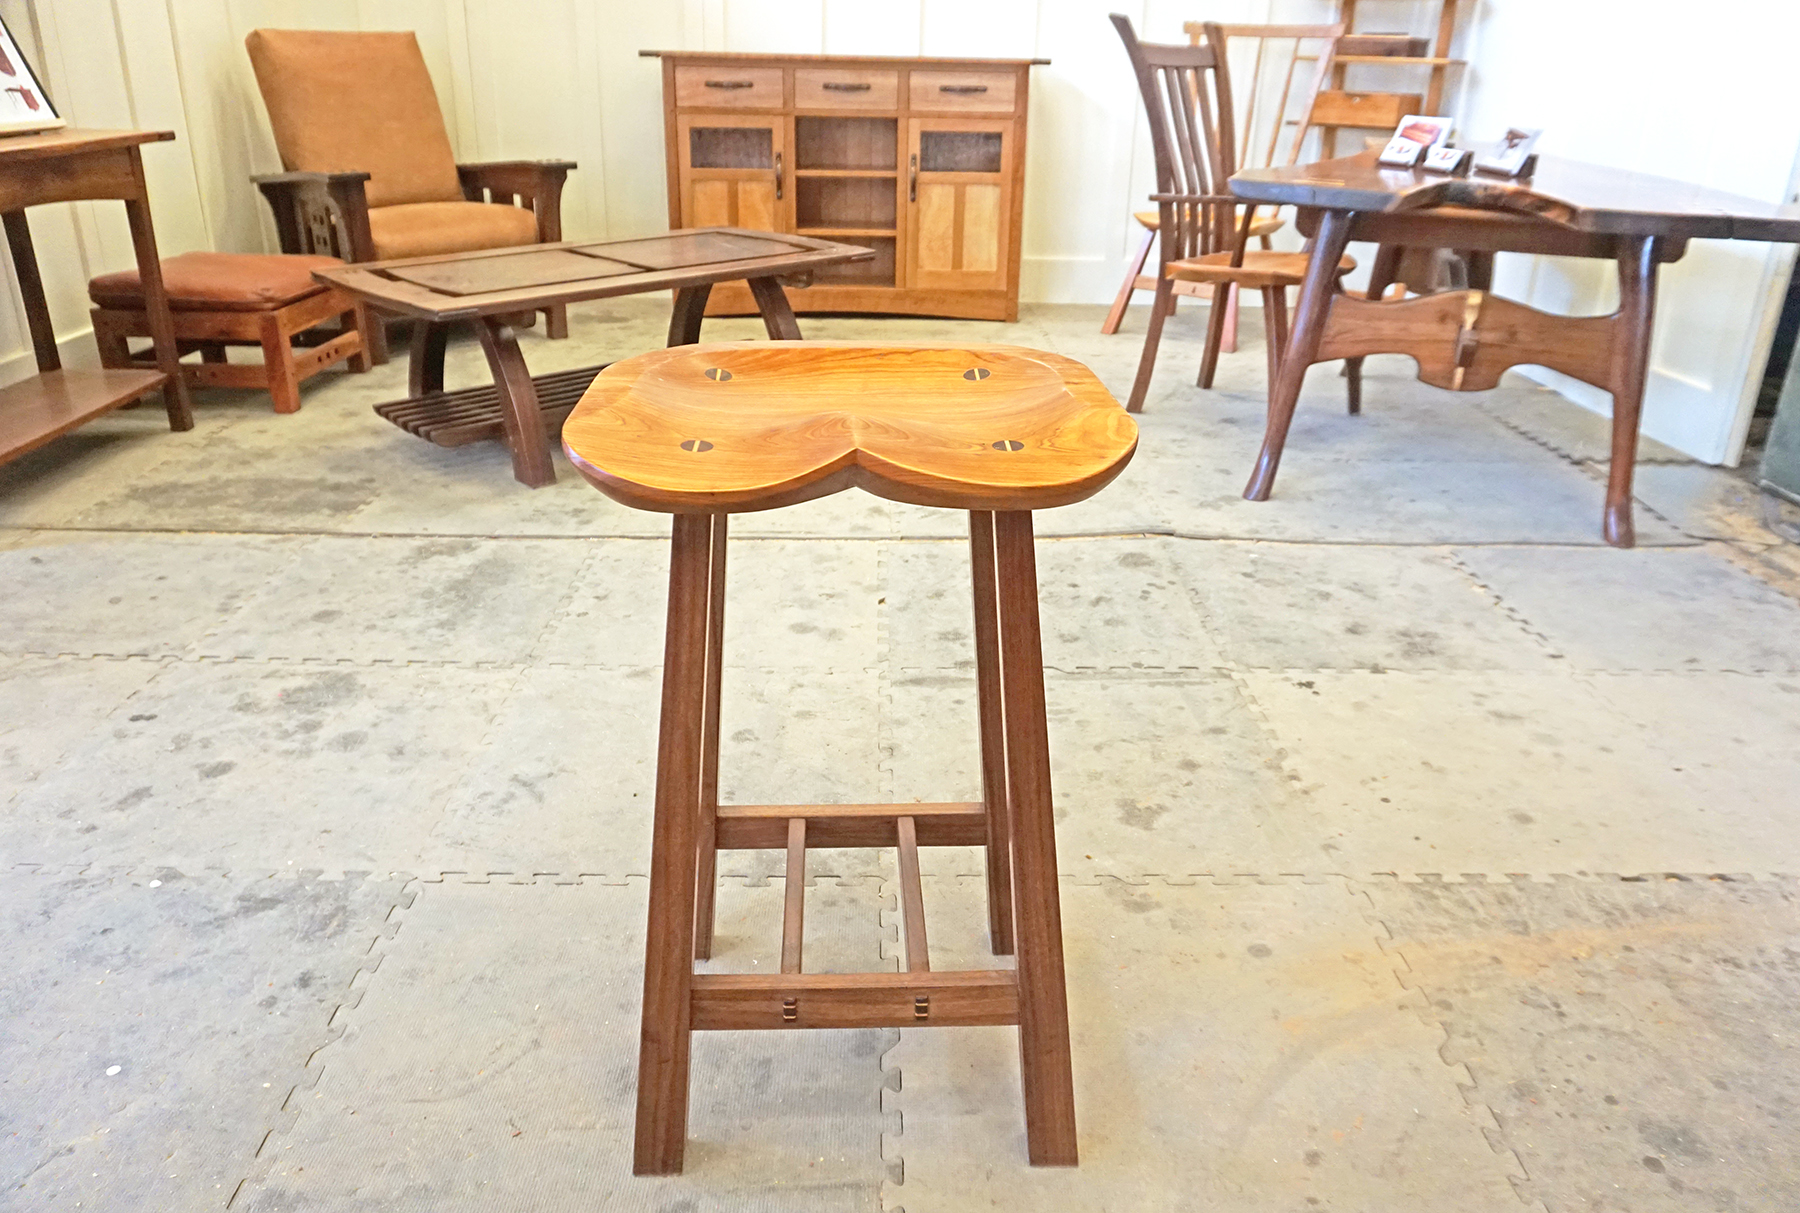 Stool Forefront (email size).jpg